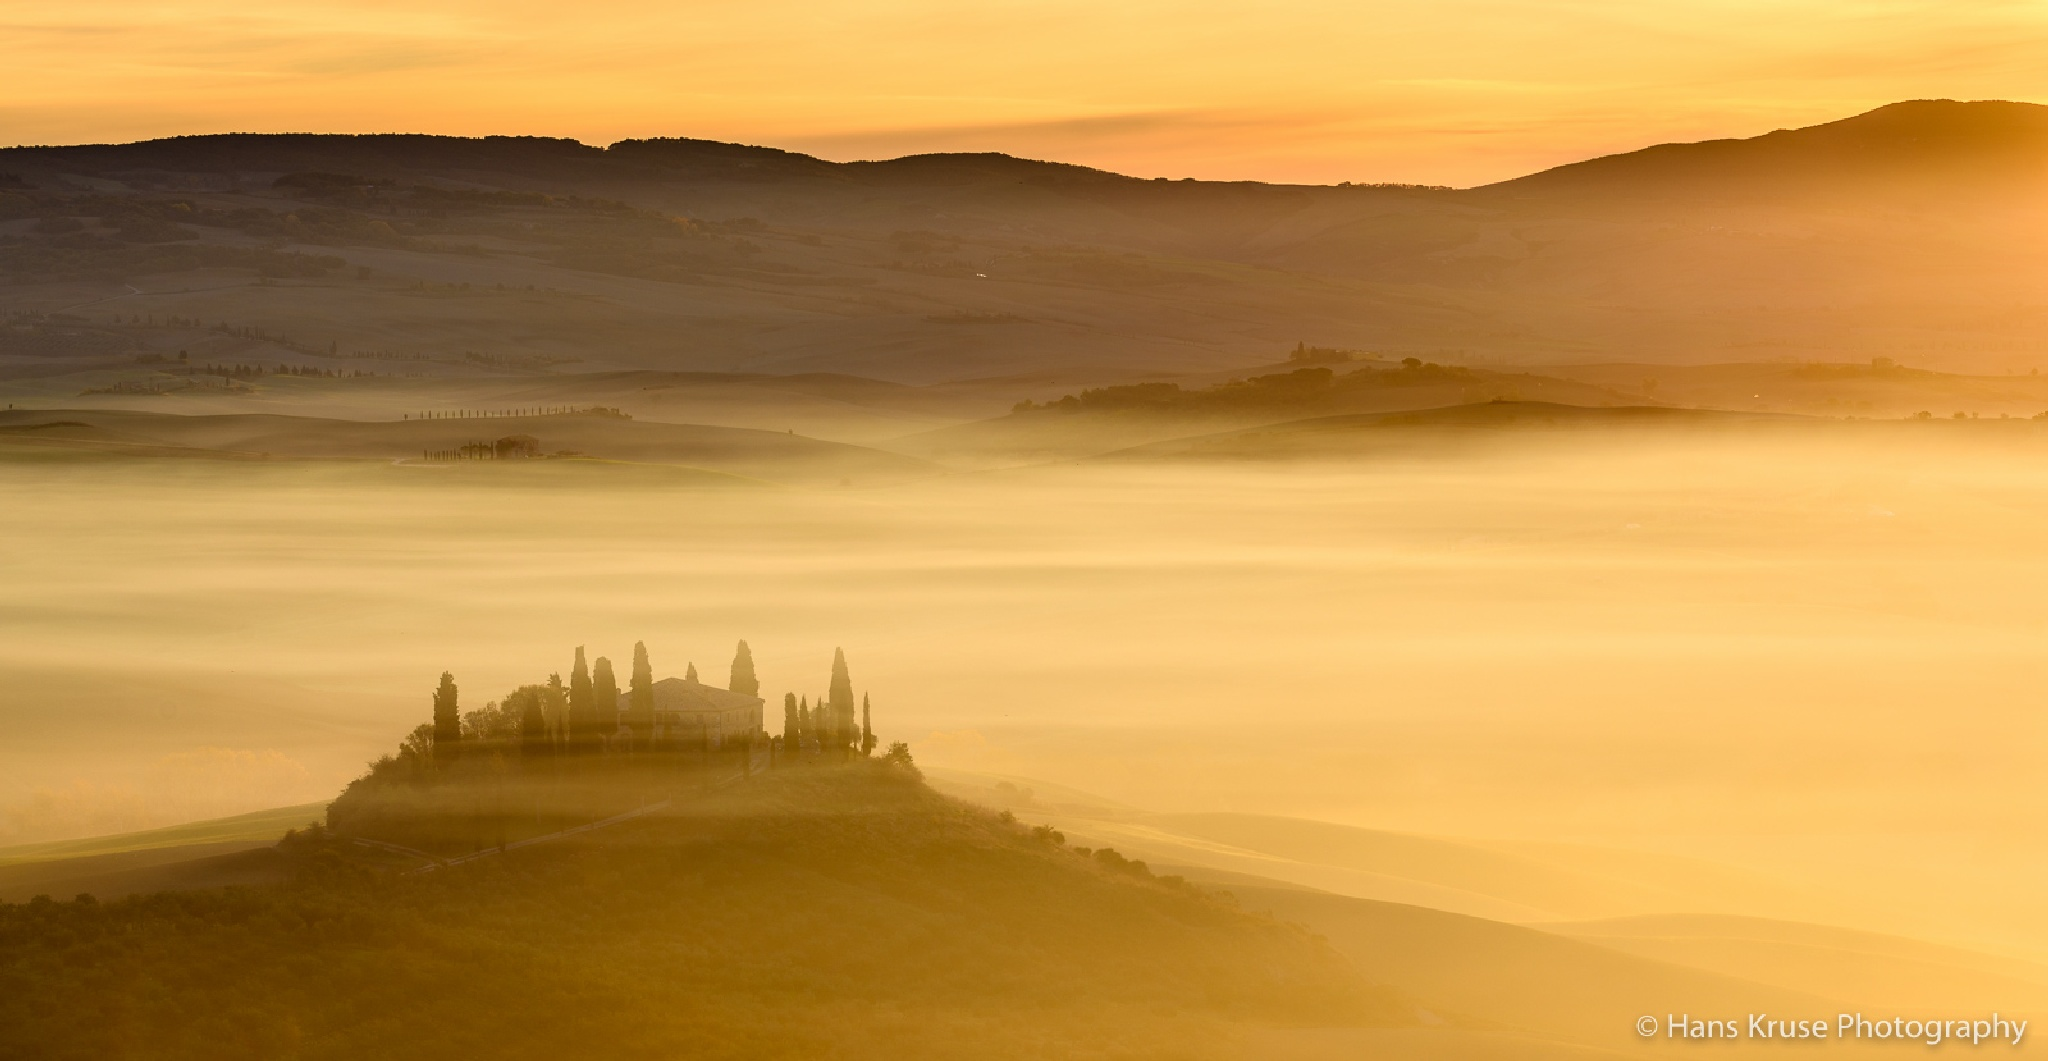 Belvedere in the fog by Hans Kruse